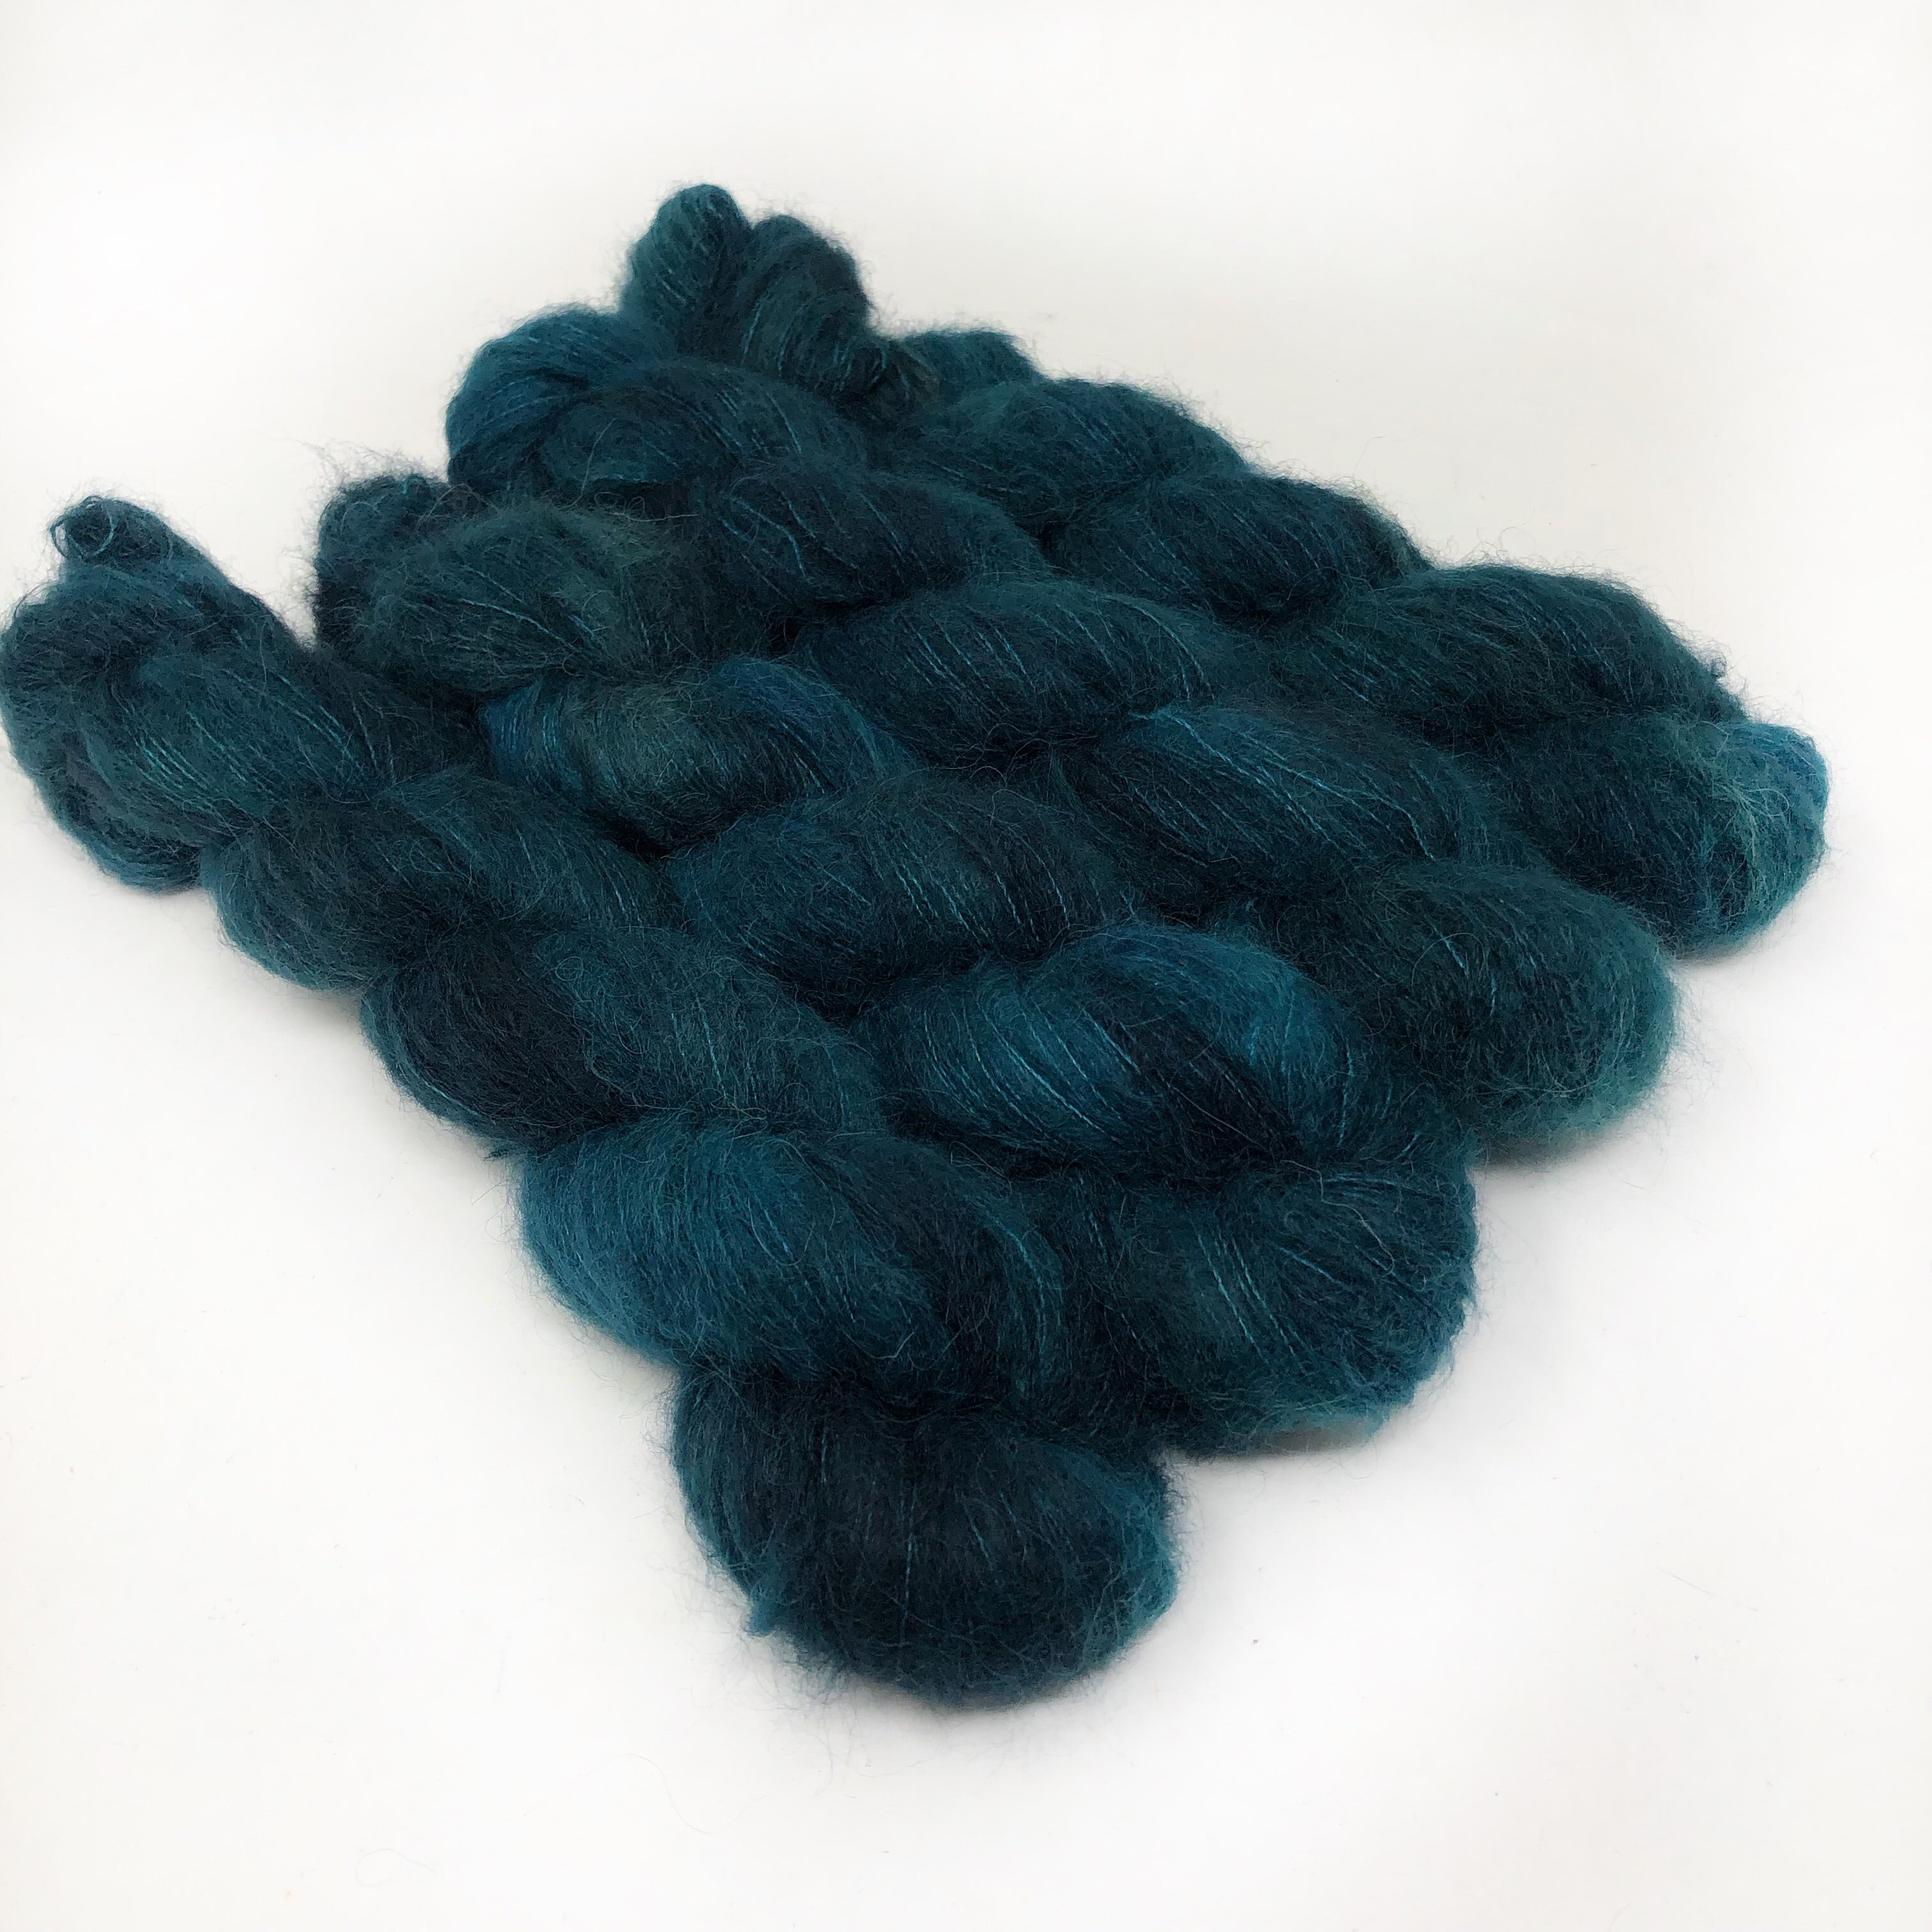 Teal - Halo Silk Laceweight